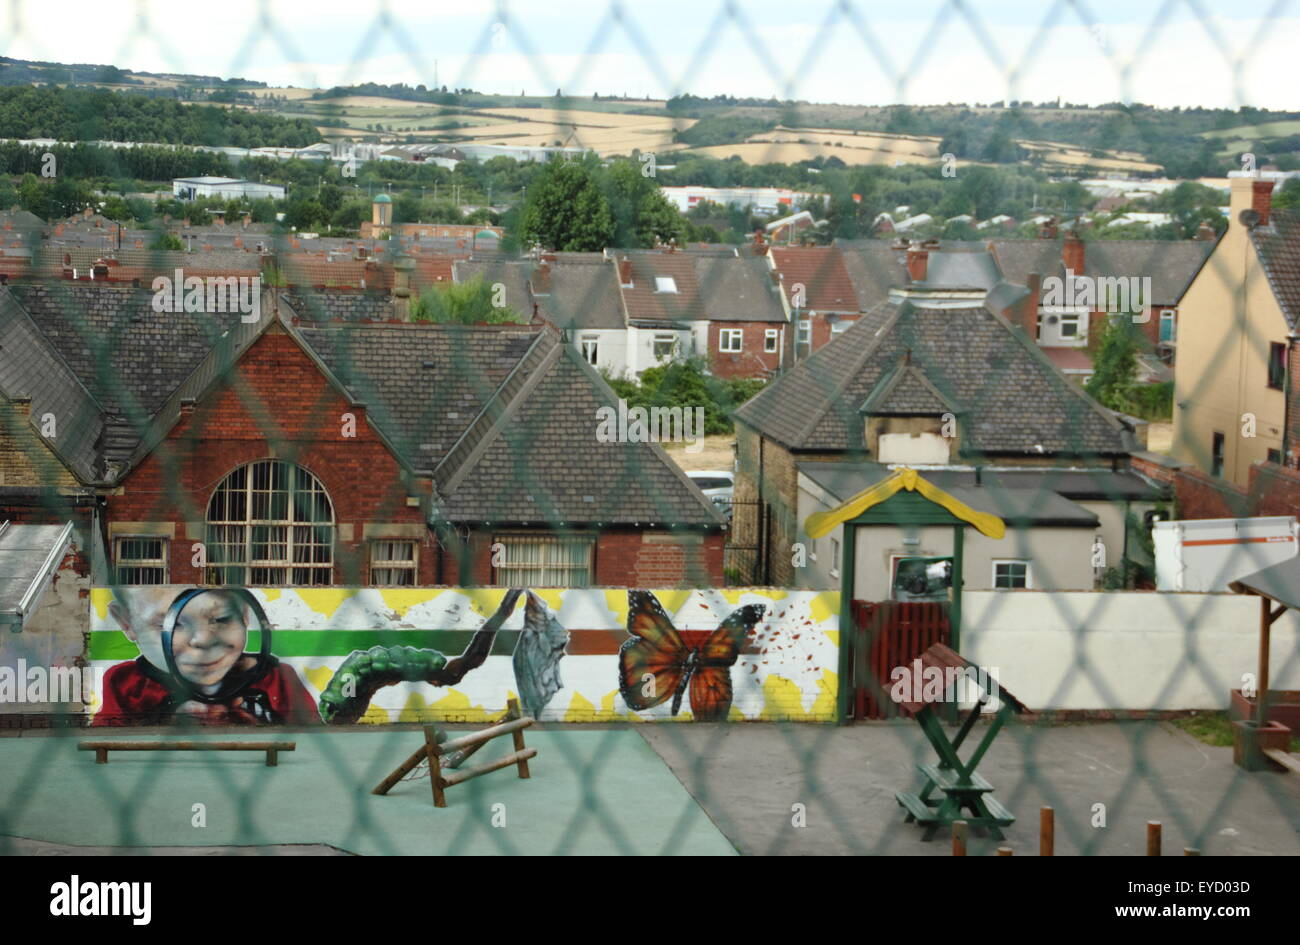 A children's play area seen through fencing in Rotherham looking to the Eastwood area of the town, South Yorkshire - Stock Image